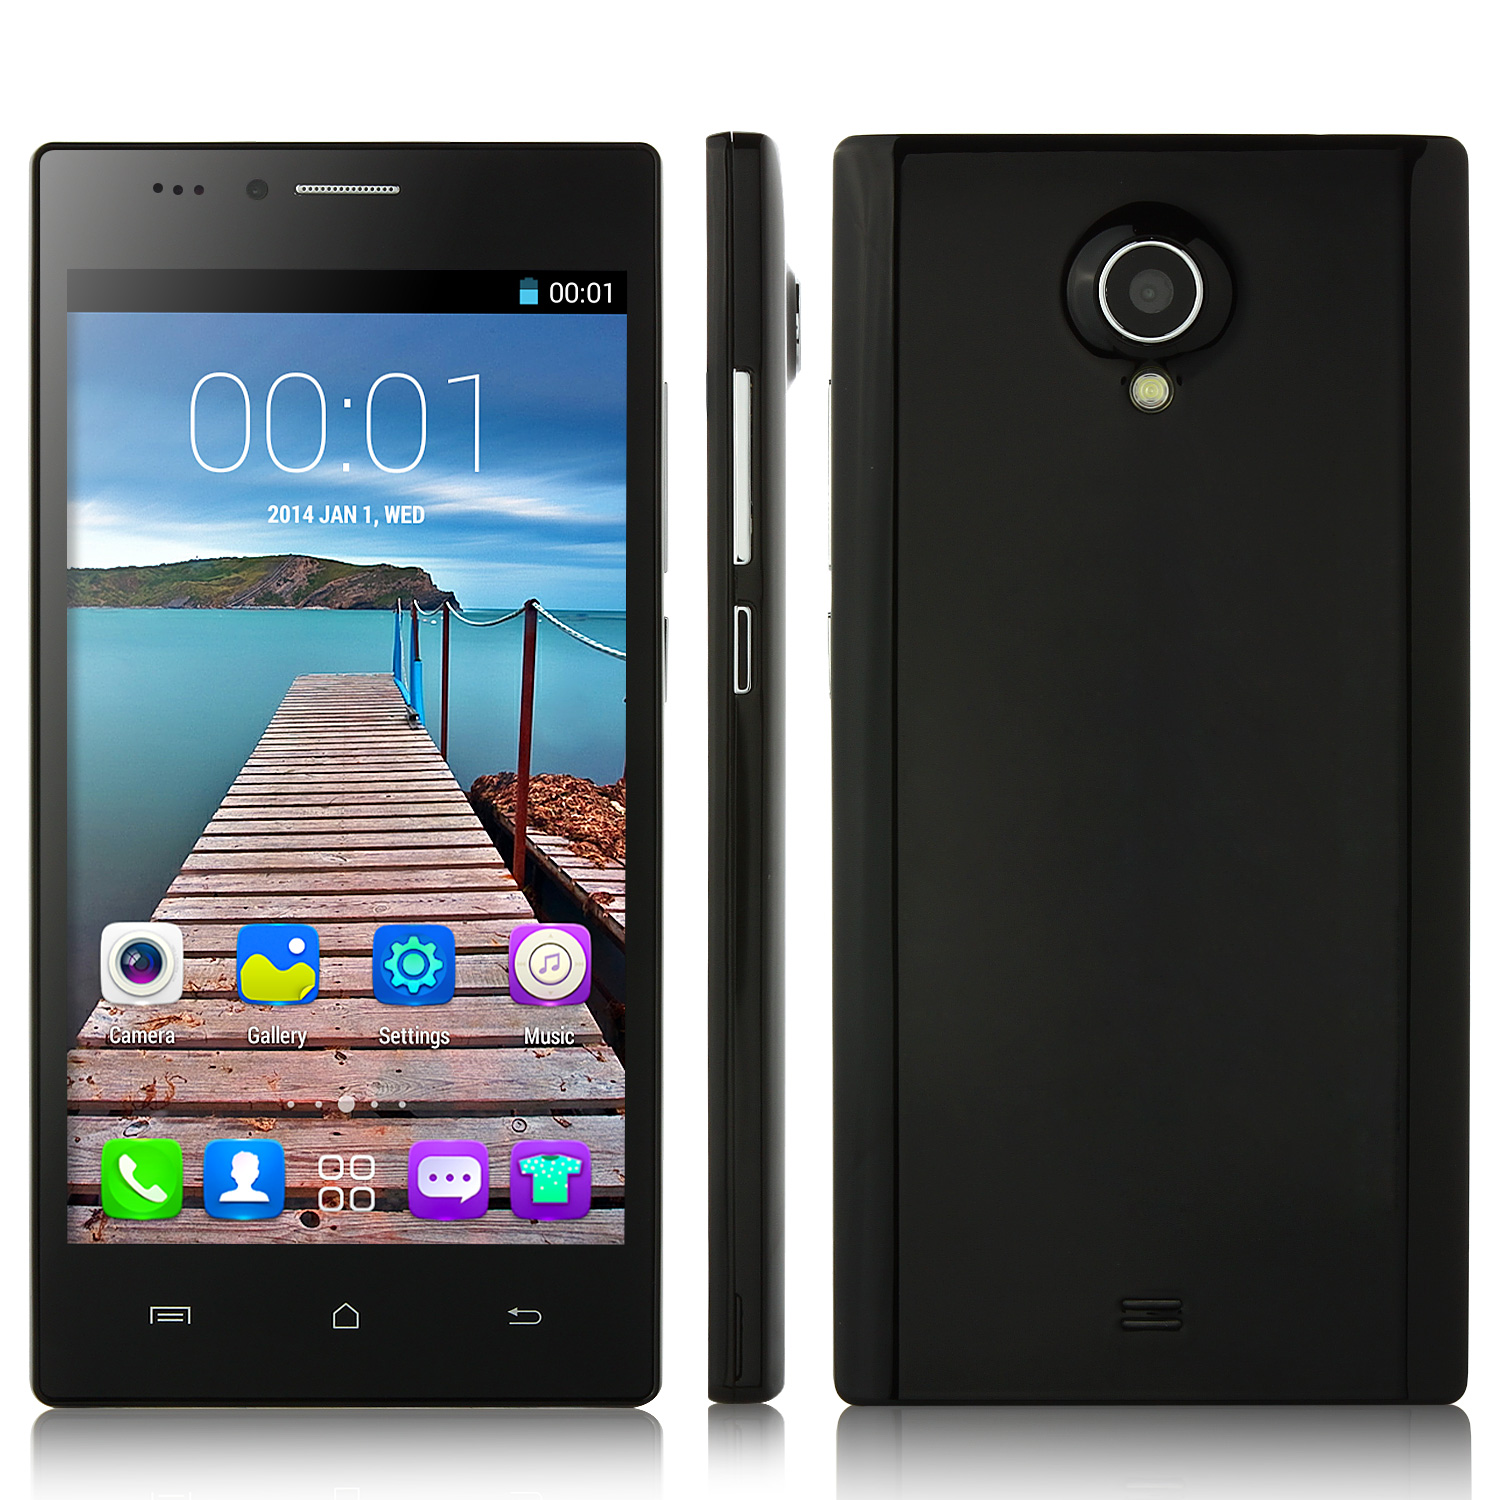 Mpie S310 Smartphone 5.0 Inch Android 4.4 MTK6572W 3G GPS Black